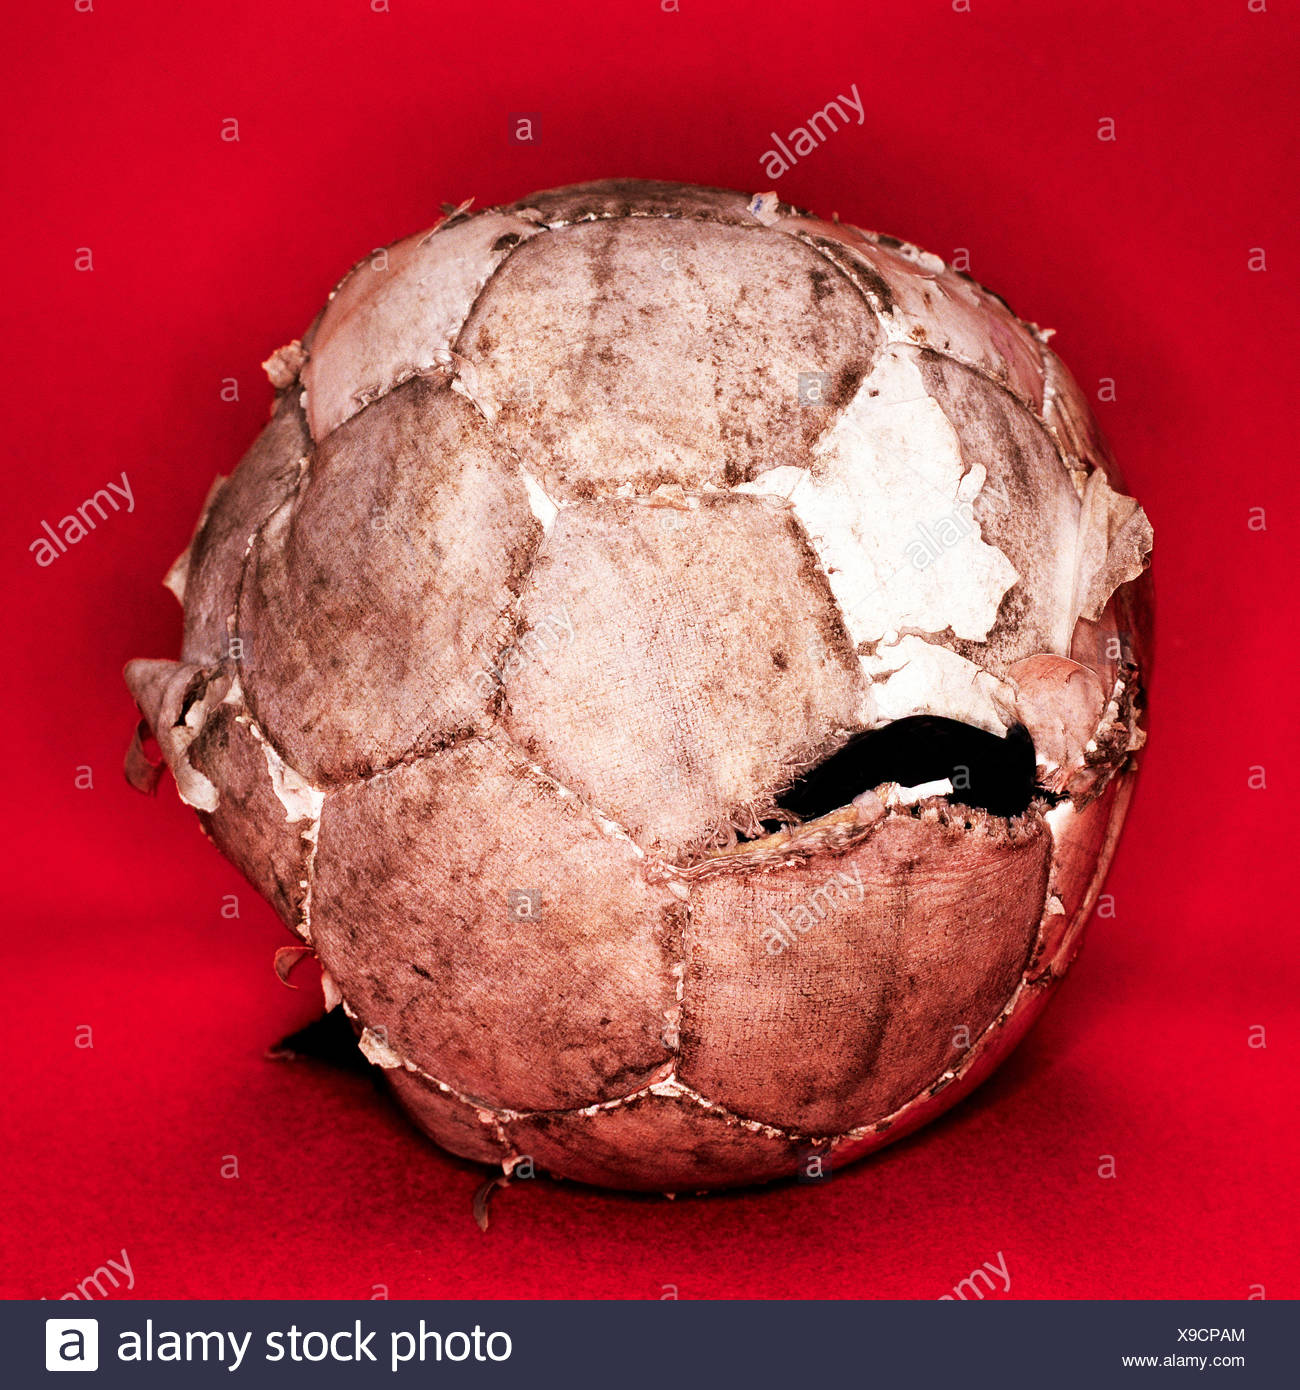 Worn out football - Stock Image